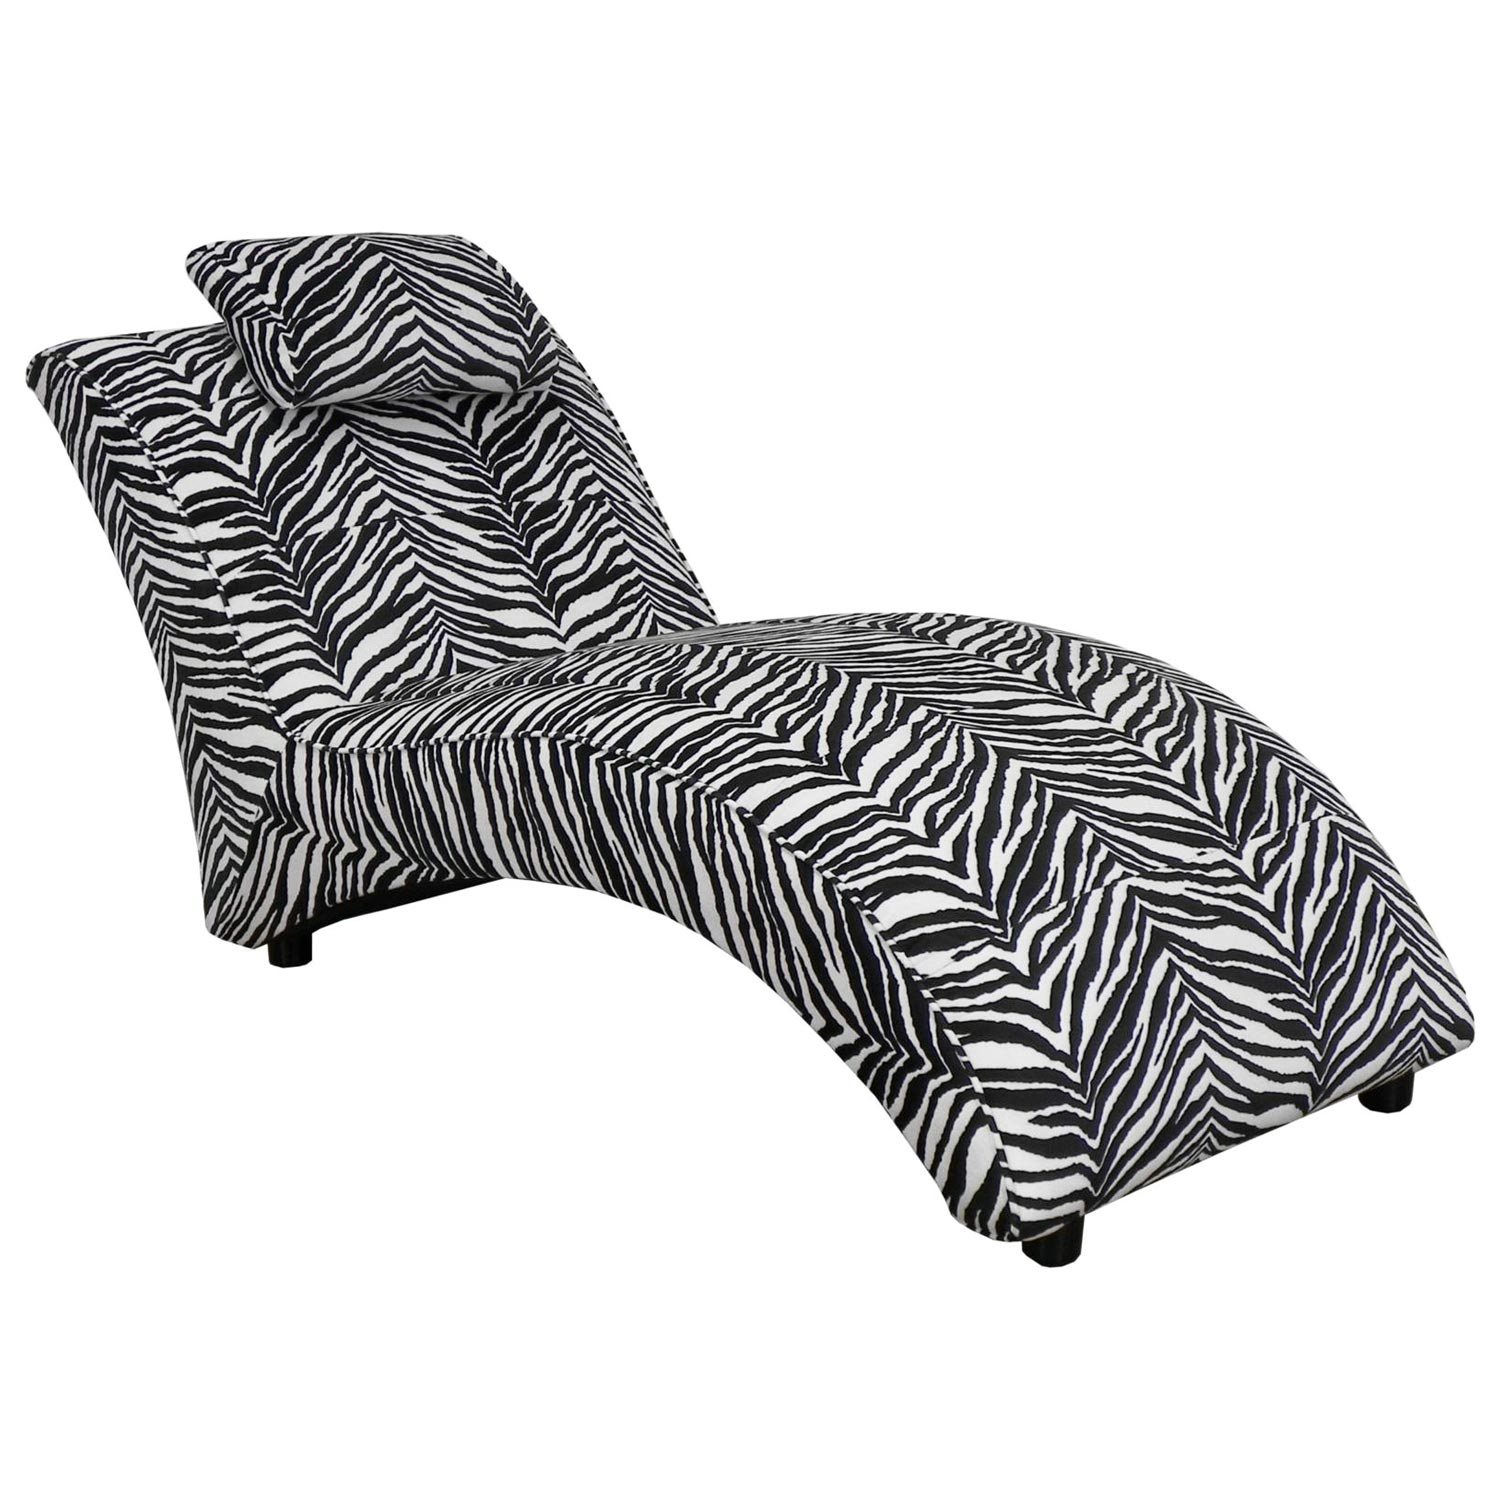 blaine fabric chaise lounge zebra pattern dcg stores. Black Bedroom Furniture Sets. Home Design Ideas